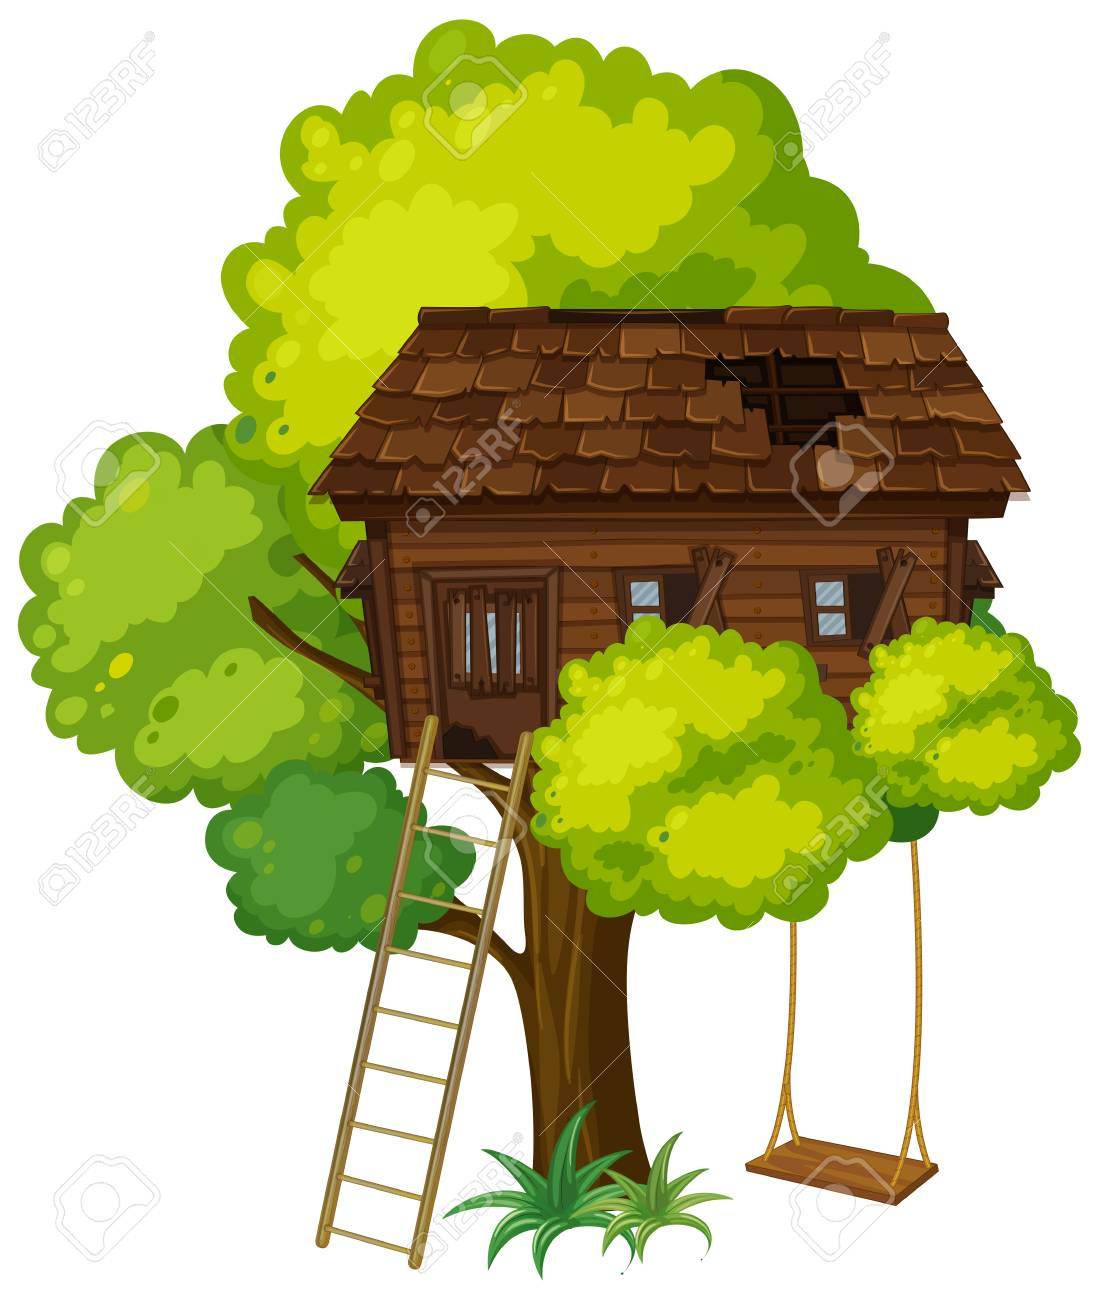 Treehouse with swing on the tree illustration.